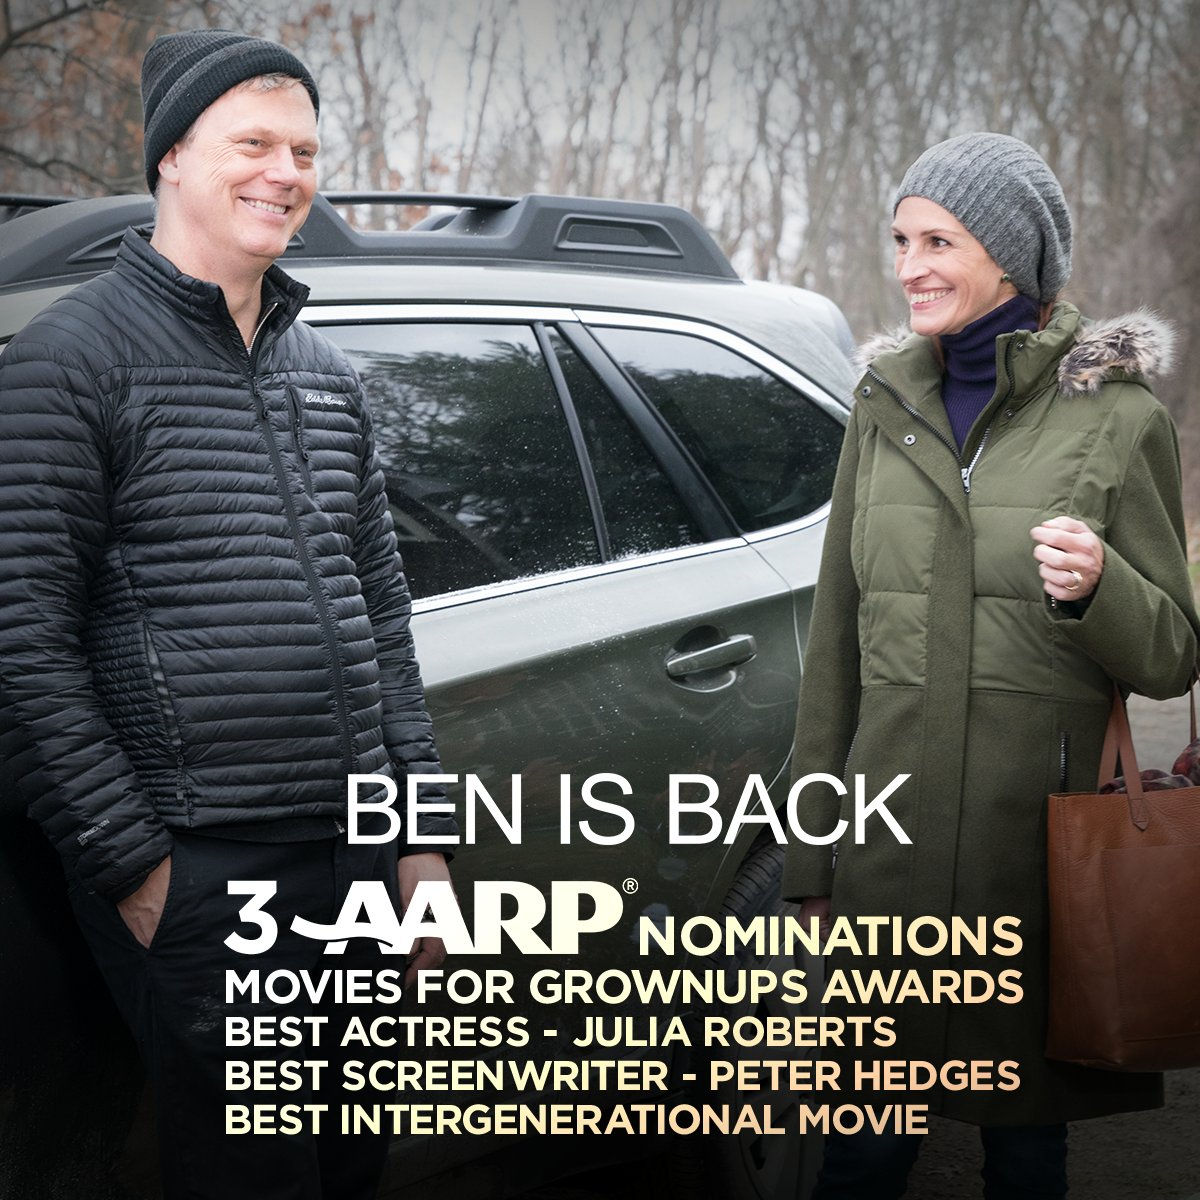 Congratulations to the cast and crew on their 3 AARP Movies for Grownups Awards nominations!